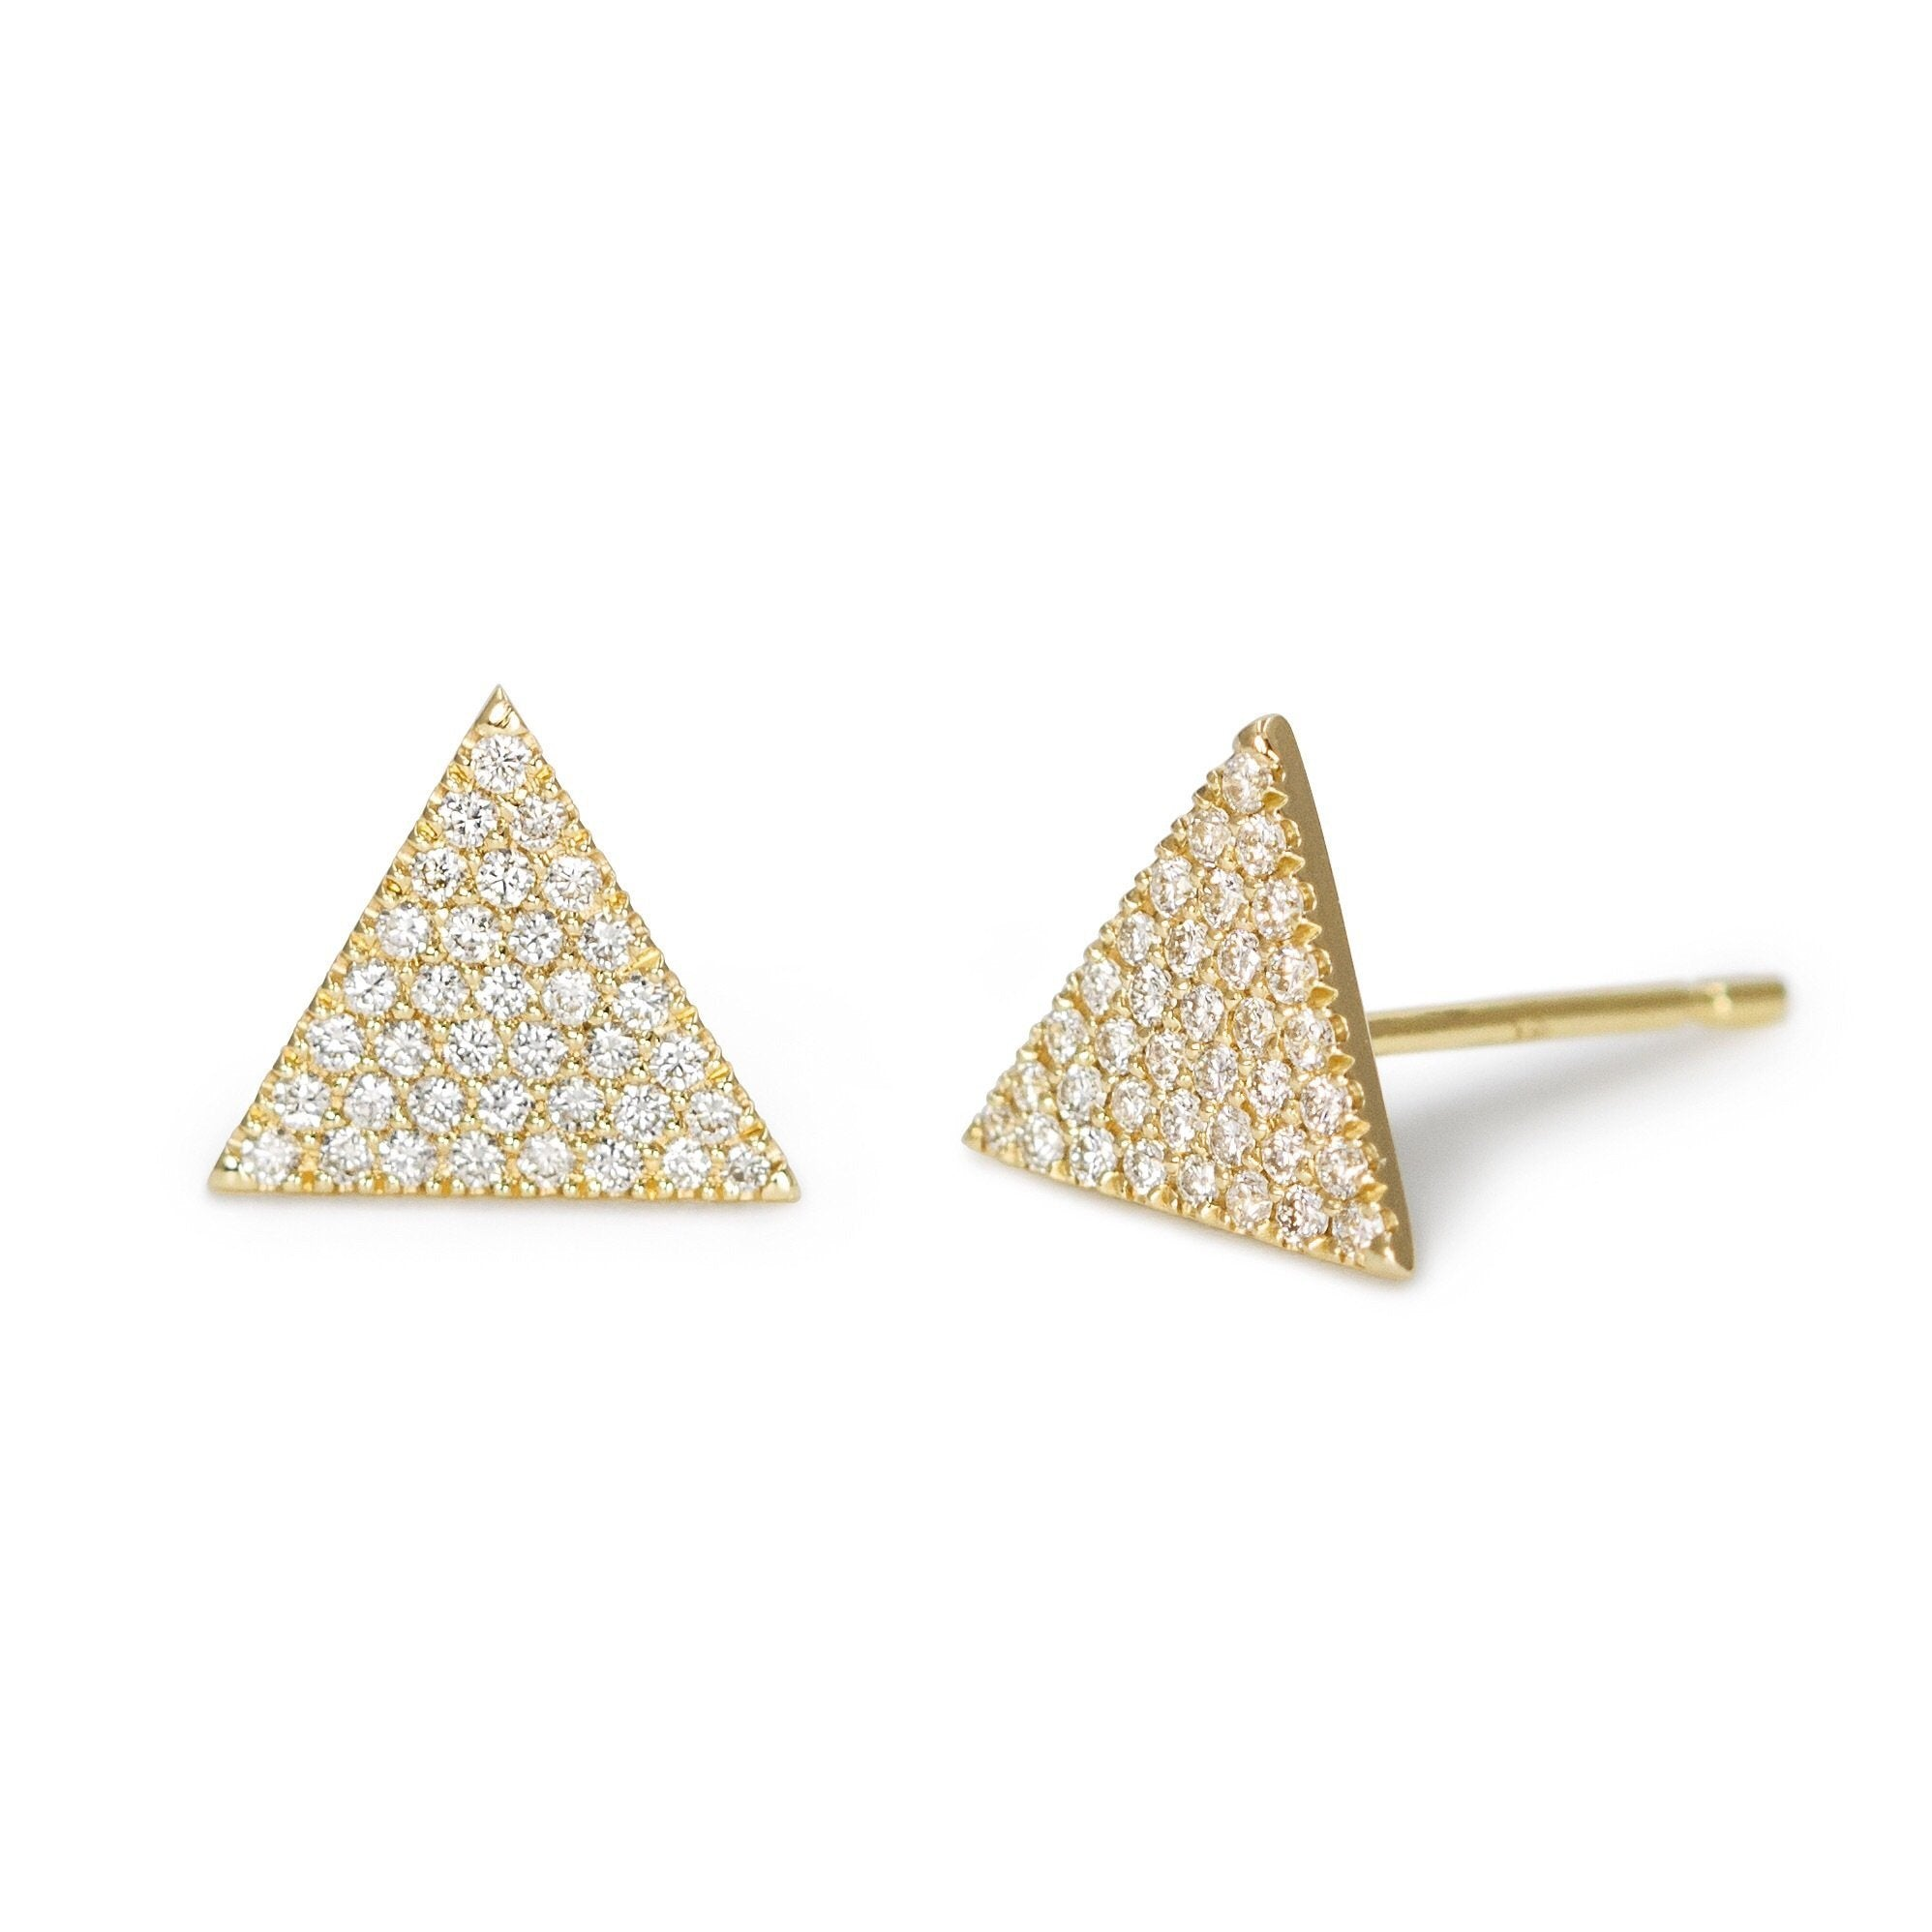 ct in products diamond jewellery stud white jewels gold champagne earring vir earrings